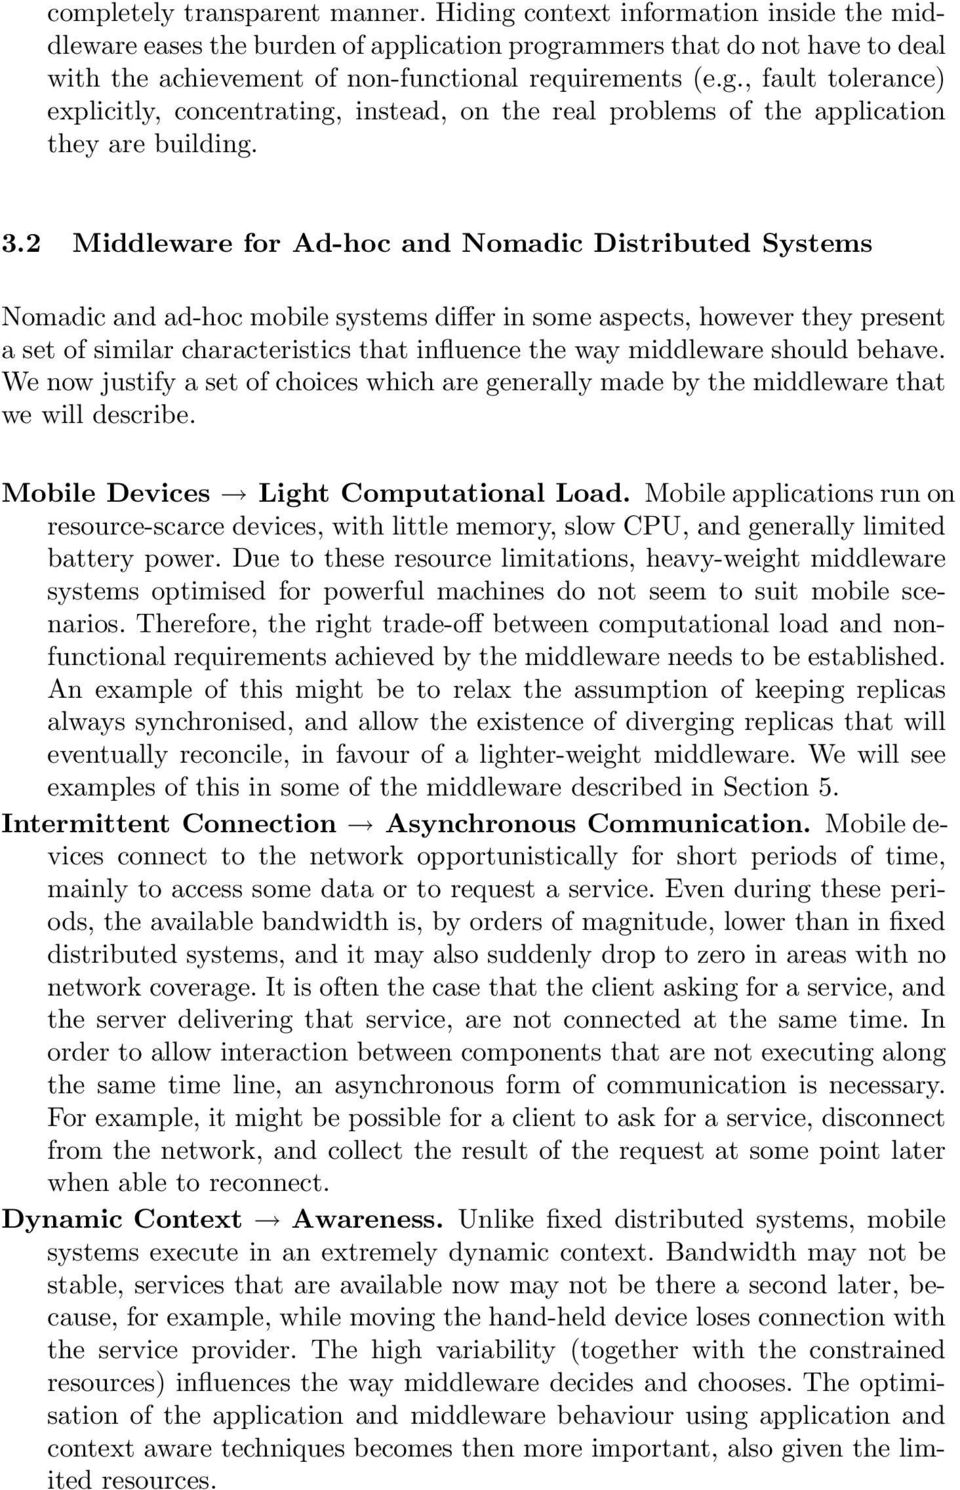 3.2 Middleware for Ad-hoc and Nomadic Distributed Systems Nomadic and ad-hoc mobile systems differ in some aspects, however they present a set of similar characteristics that influence the way